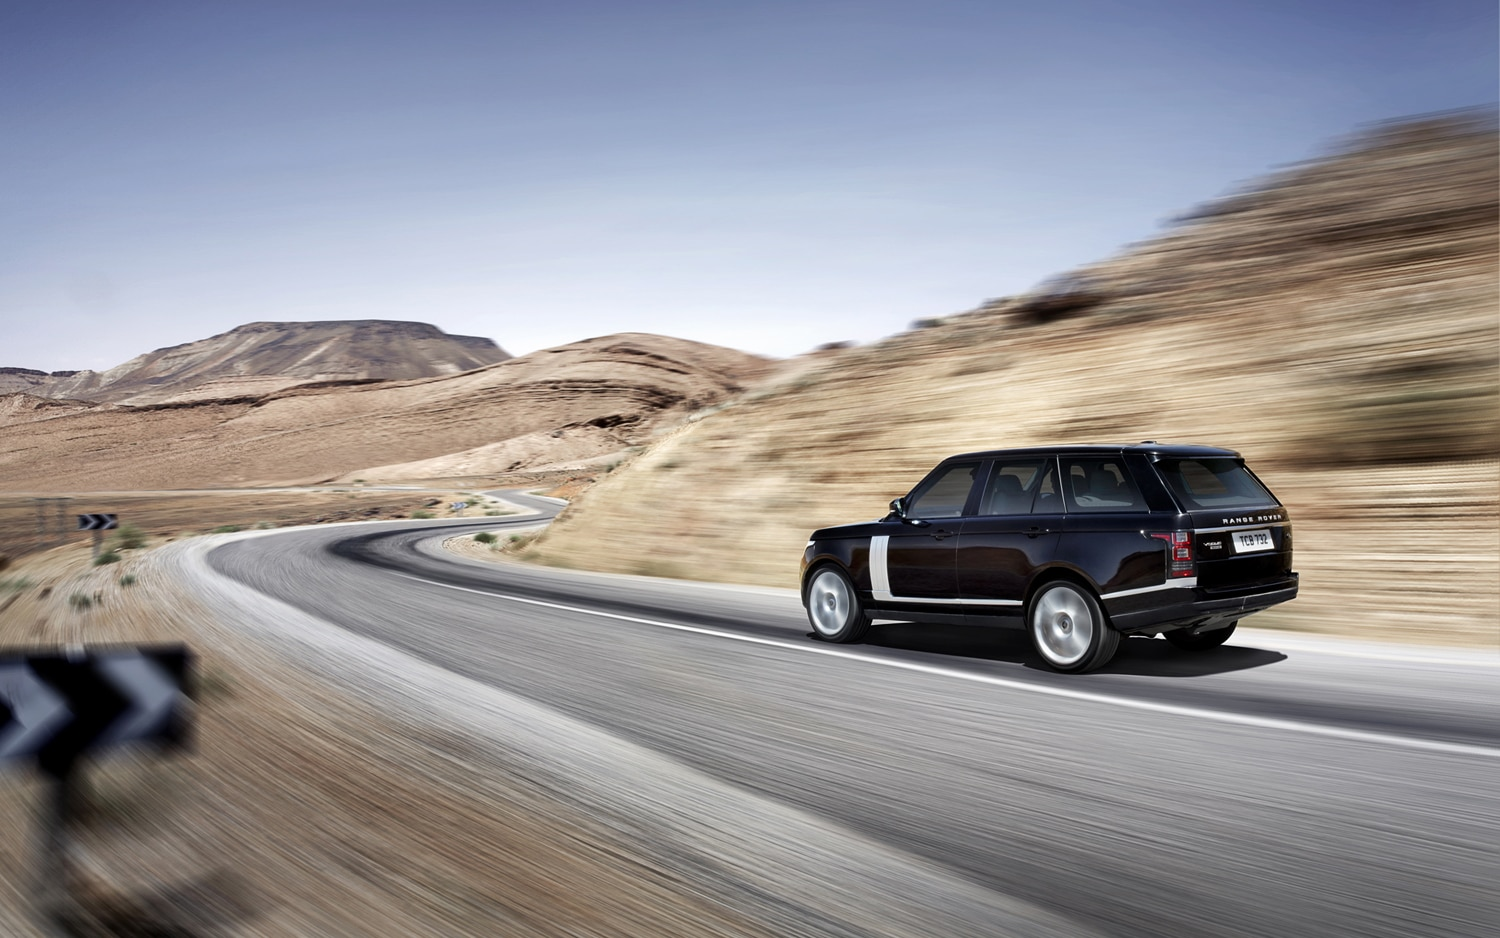 2013 Land Rover Range Rover Rear Three Quarter Turn